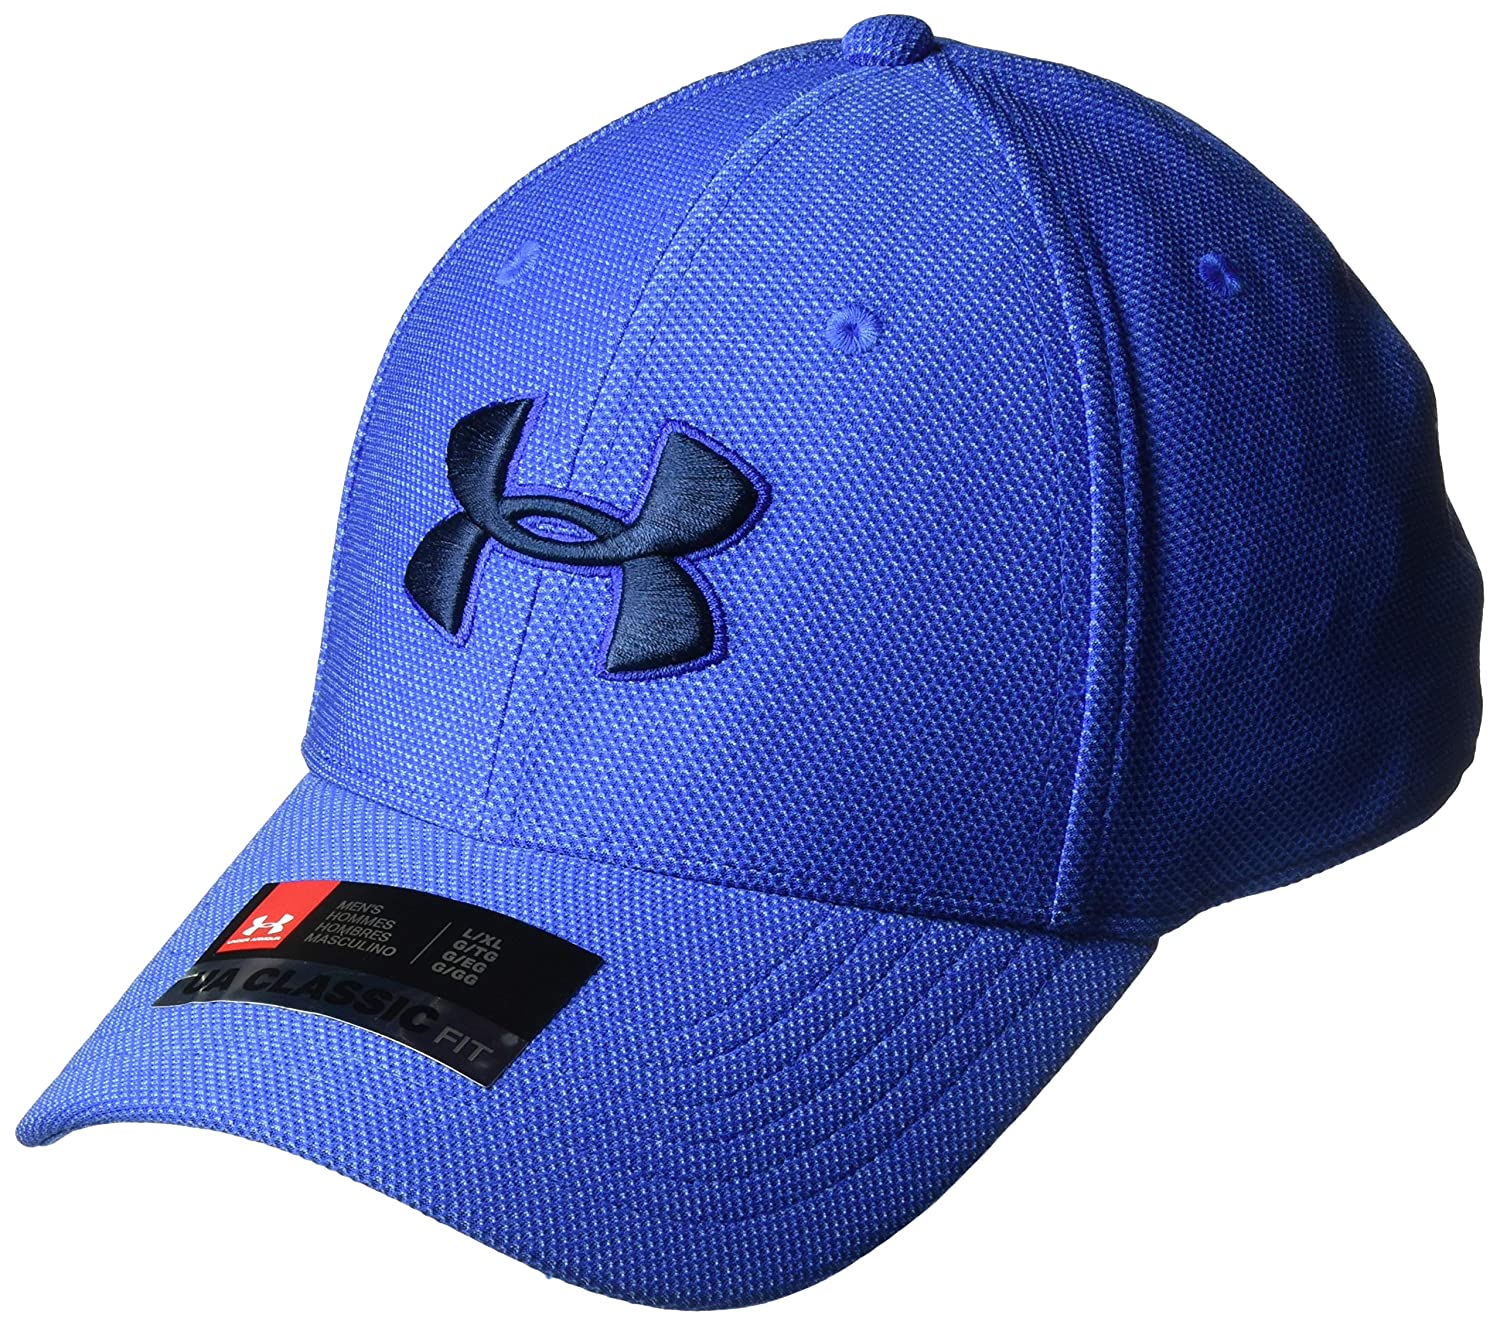 Under Armour Childrens Boys Heather Blitzing 3.0 Cap